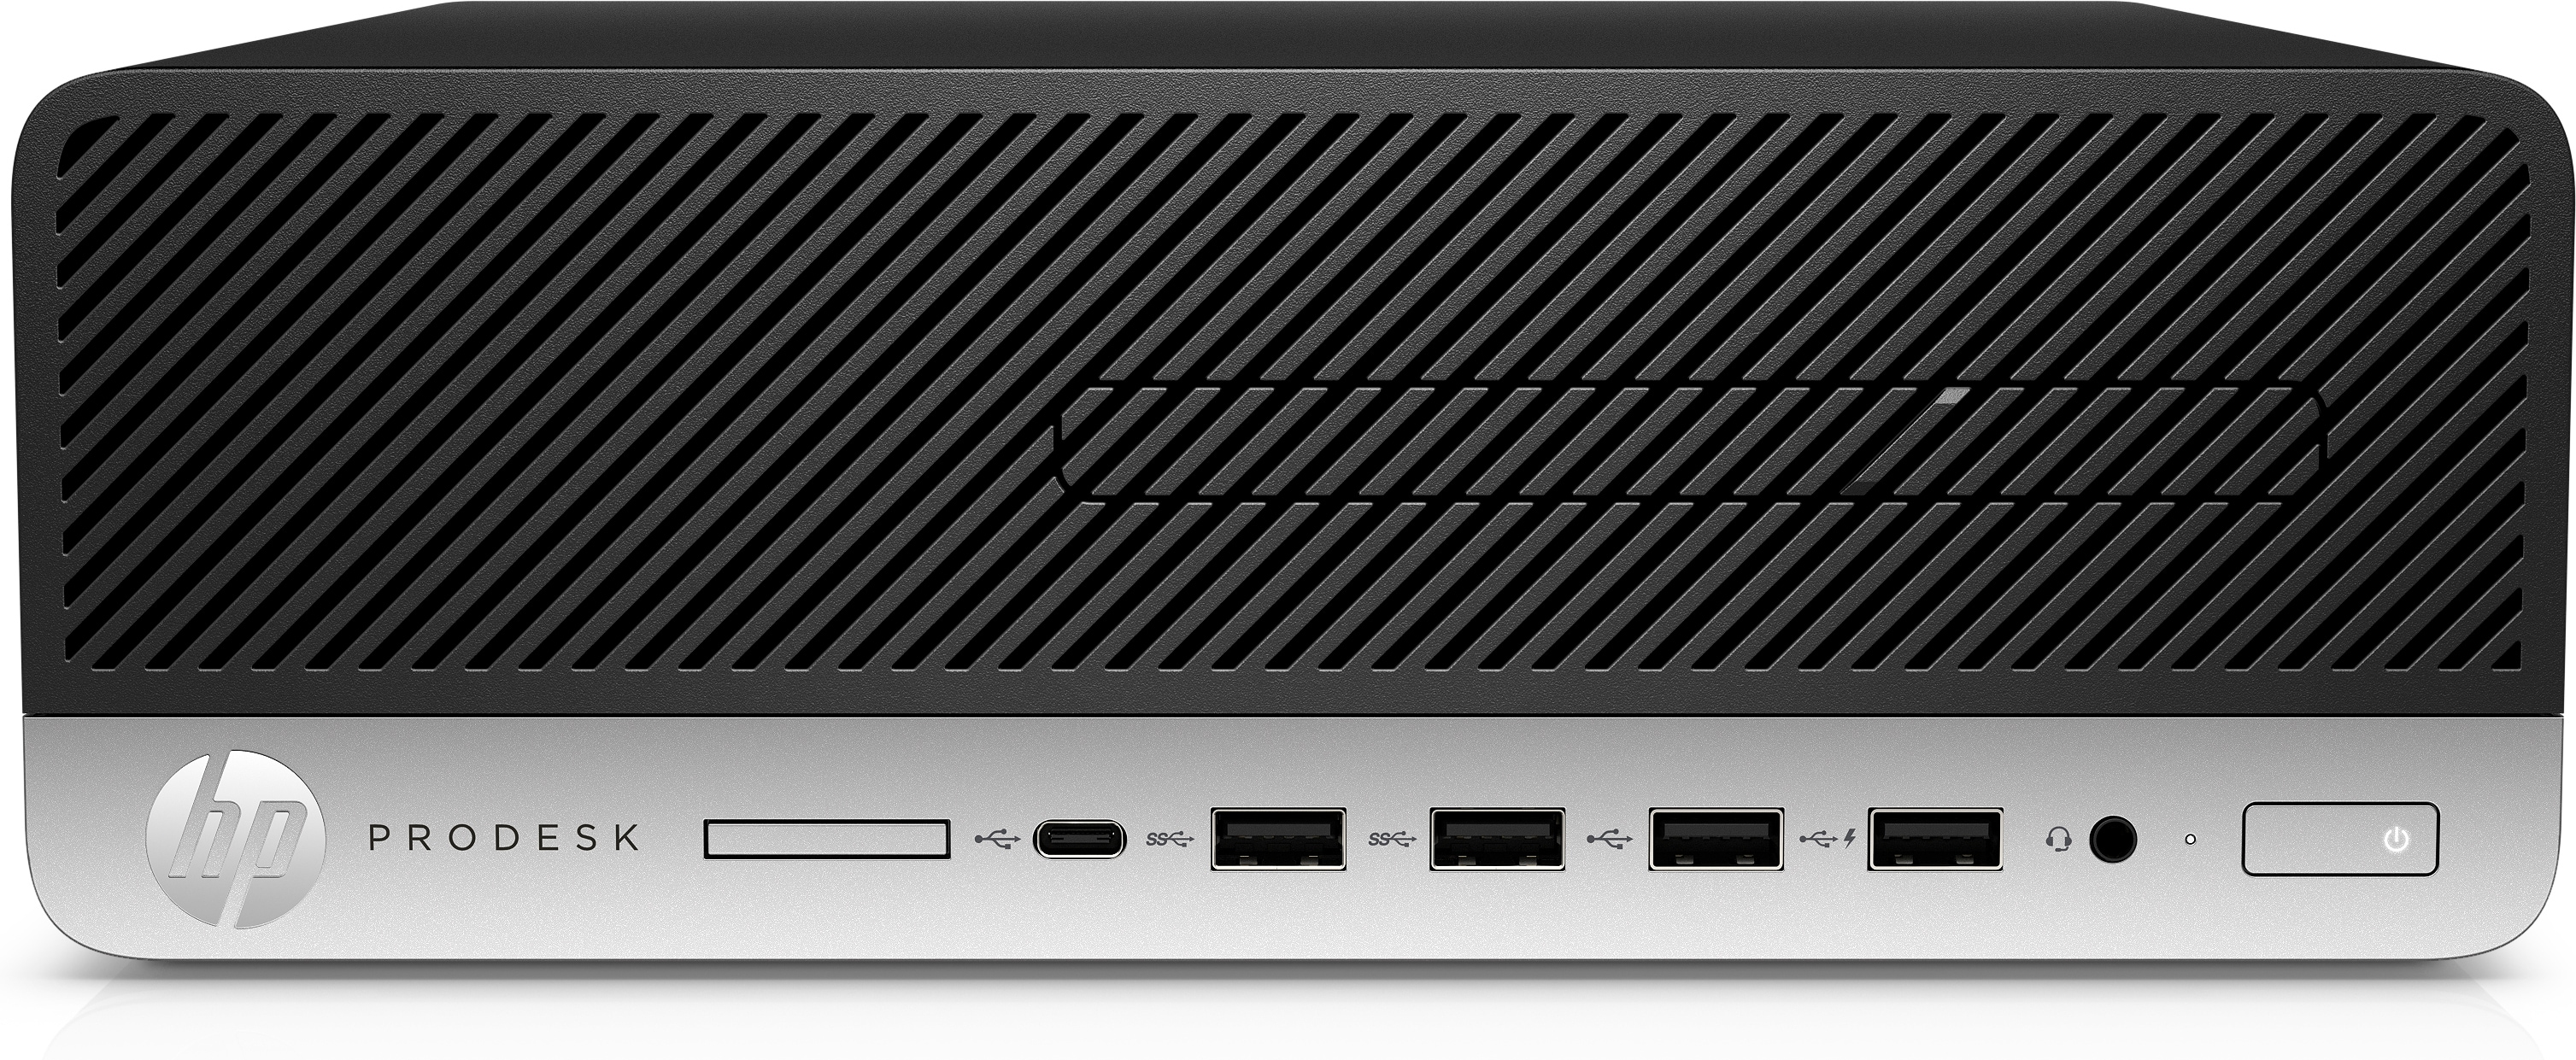 HP ProDesk 600 G5 - Komplettsystem - Core i5 3 GHz - RAM: 16 GB DDR4 - HDD: 512 GB NVMe - UHD Graphics 600